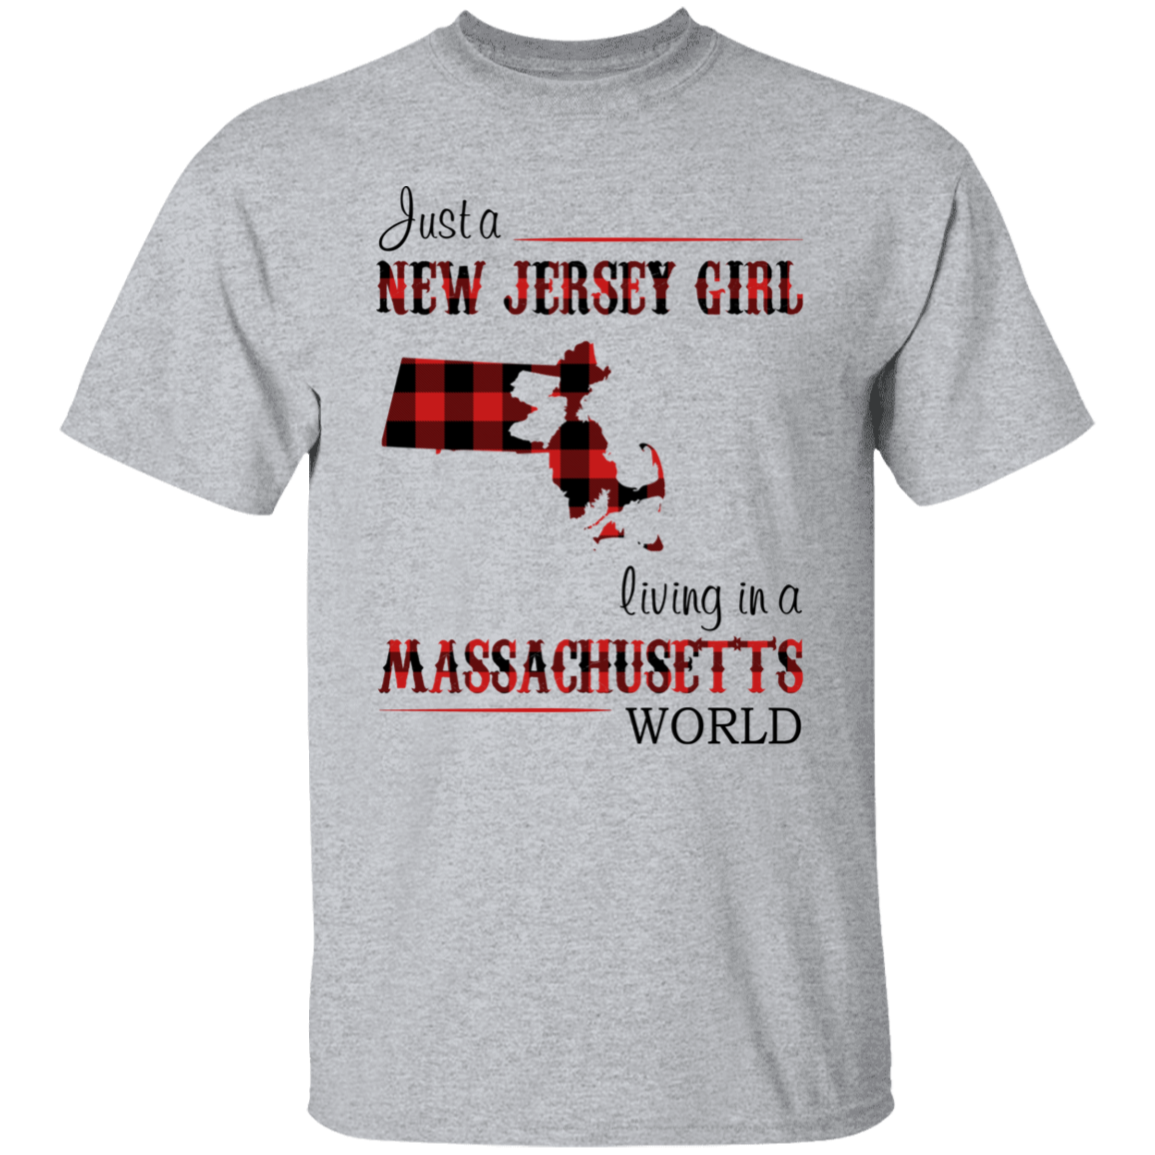 JUST A NEW JERSEY GIRL LIVING IN A MASSACHUSETTS WORLD